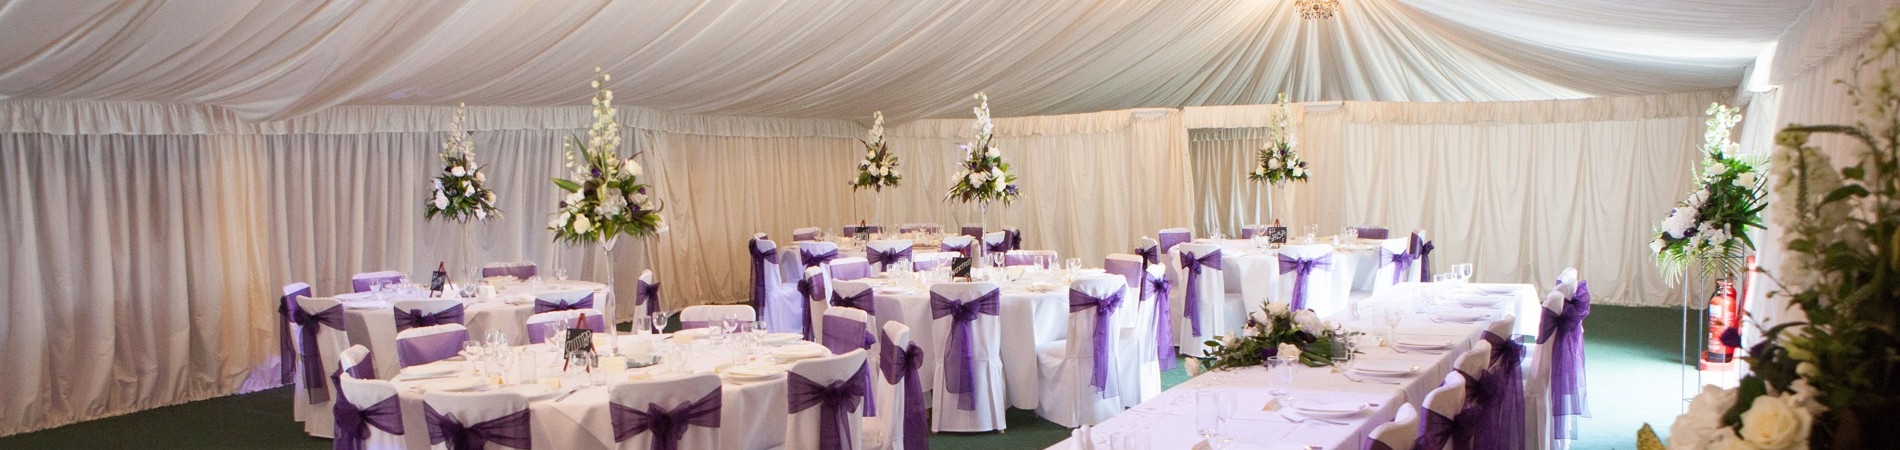 Suppliers all manor of events wedding venue ipswich suffolk junglespirit Image collections